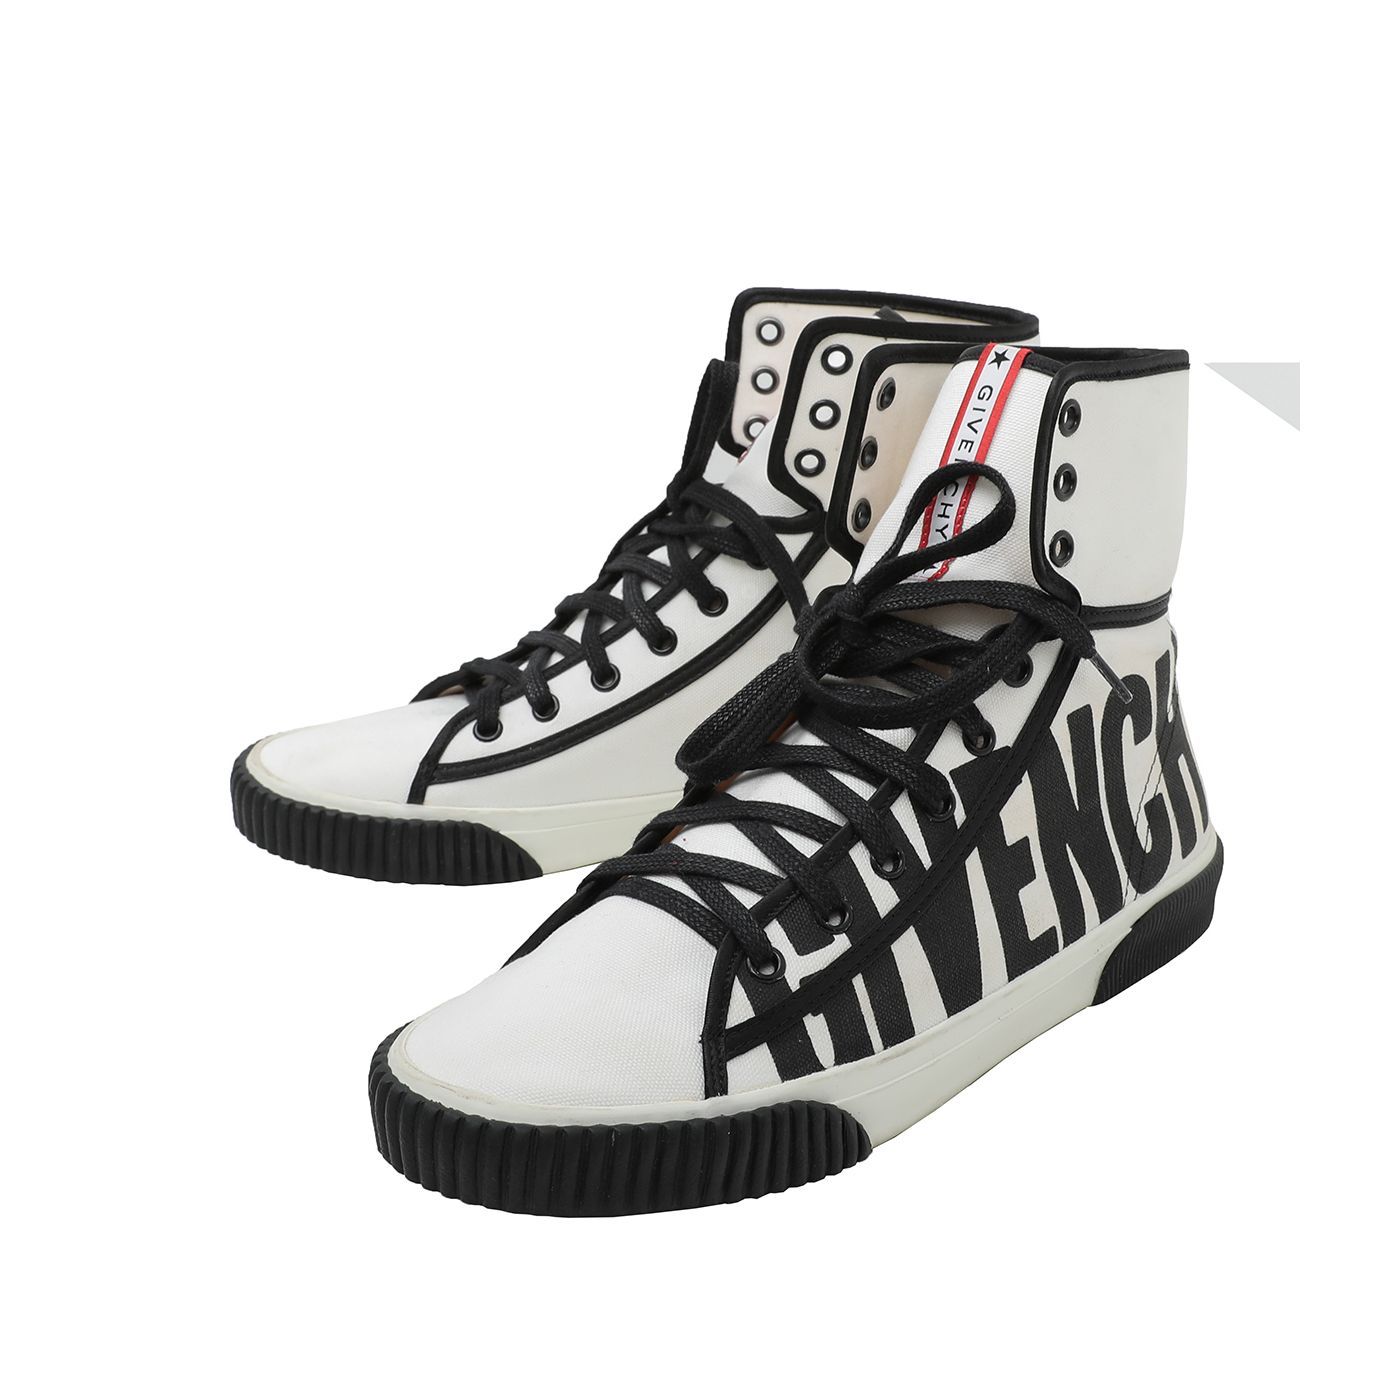 Givenchy Bicolor Cotton Boxing Sneakers